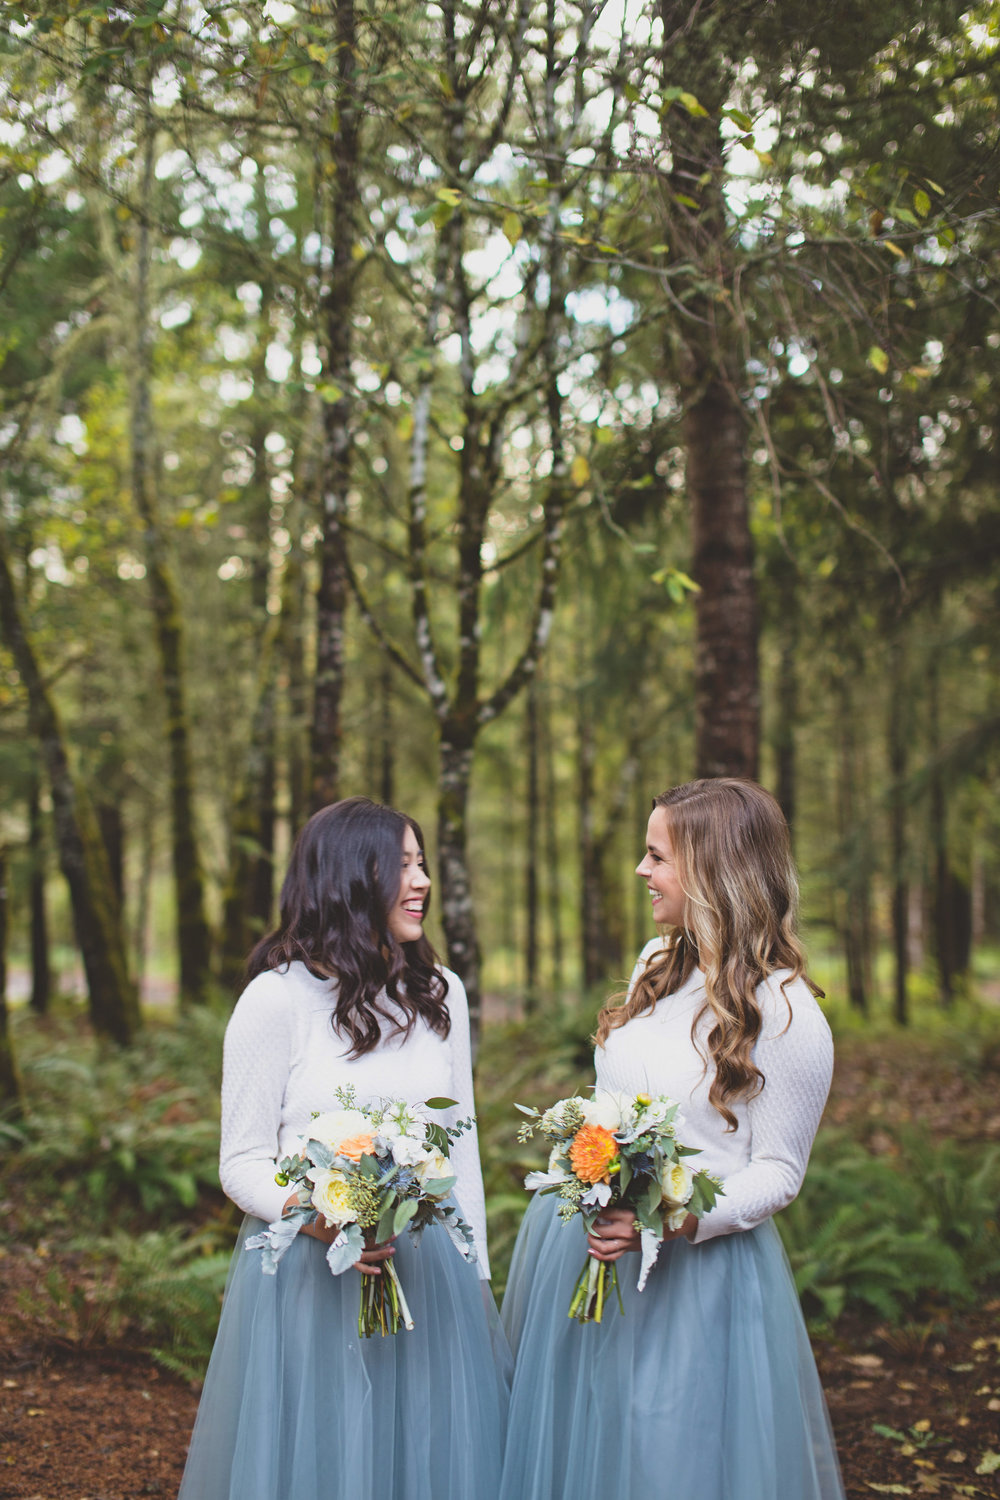 Fall Wedding - Styling by Ashley Spence